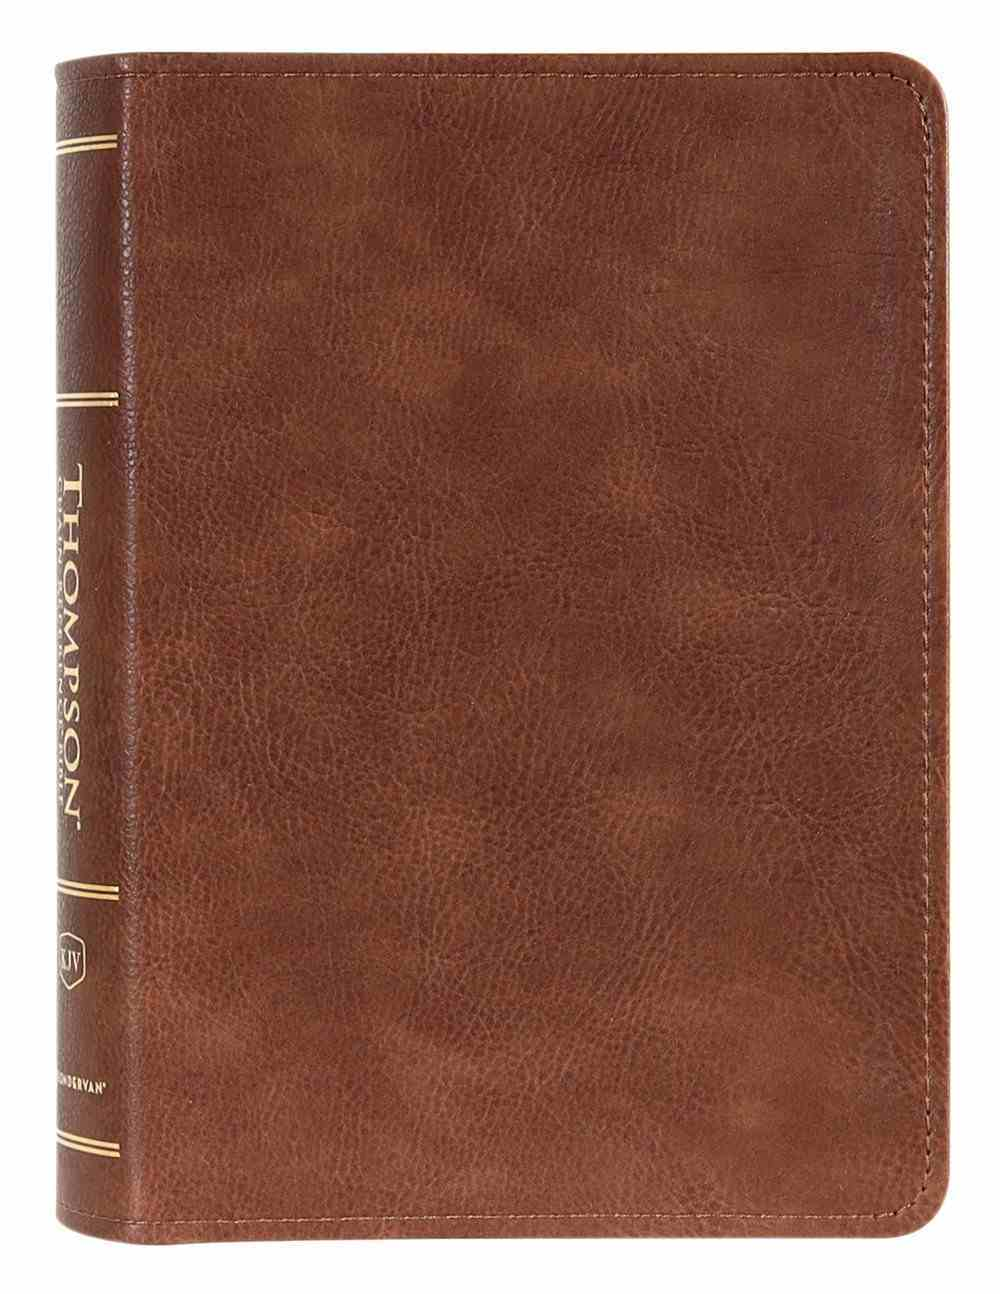 KJV Thompson Chain-Reference Bible Handy Size Brown (Red Letter Edition) Premium Imitation Leather